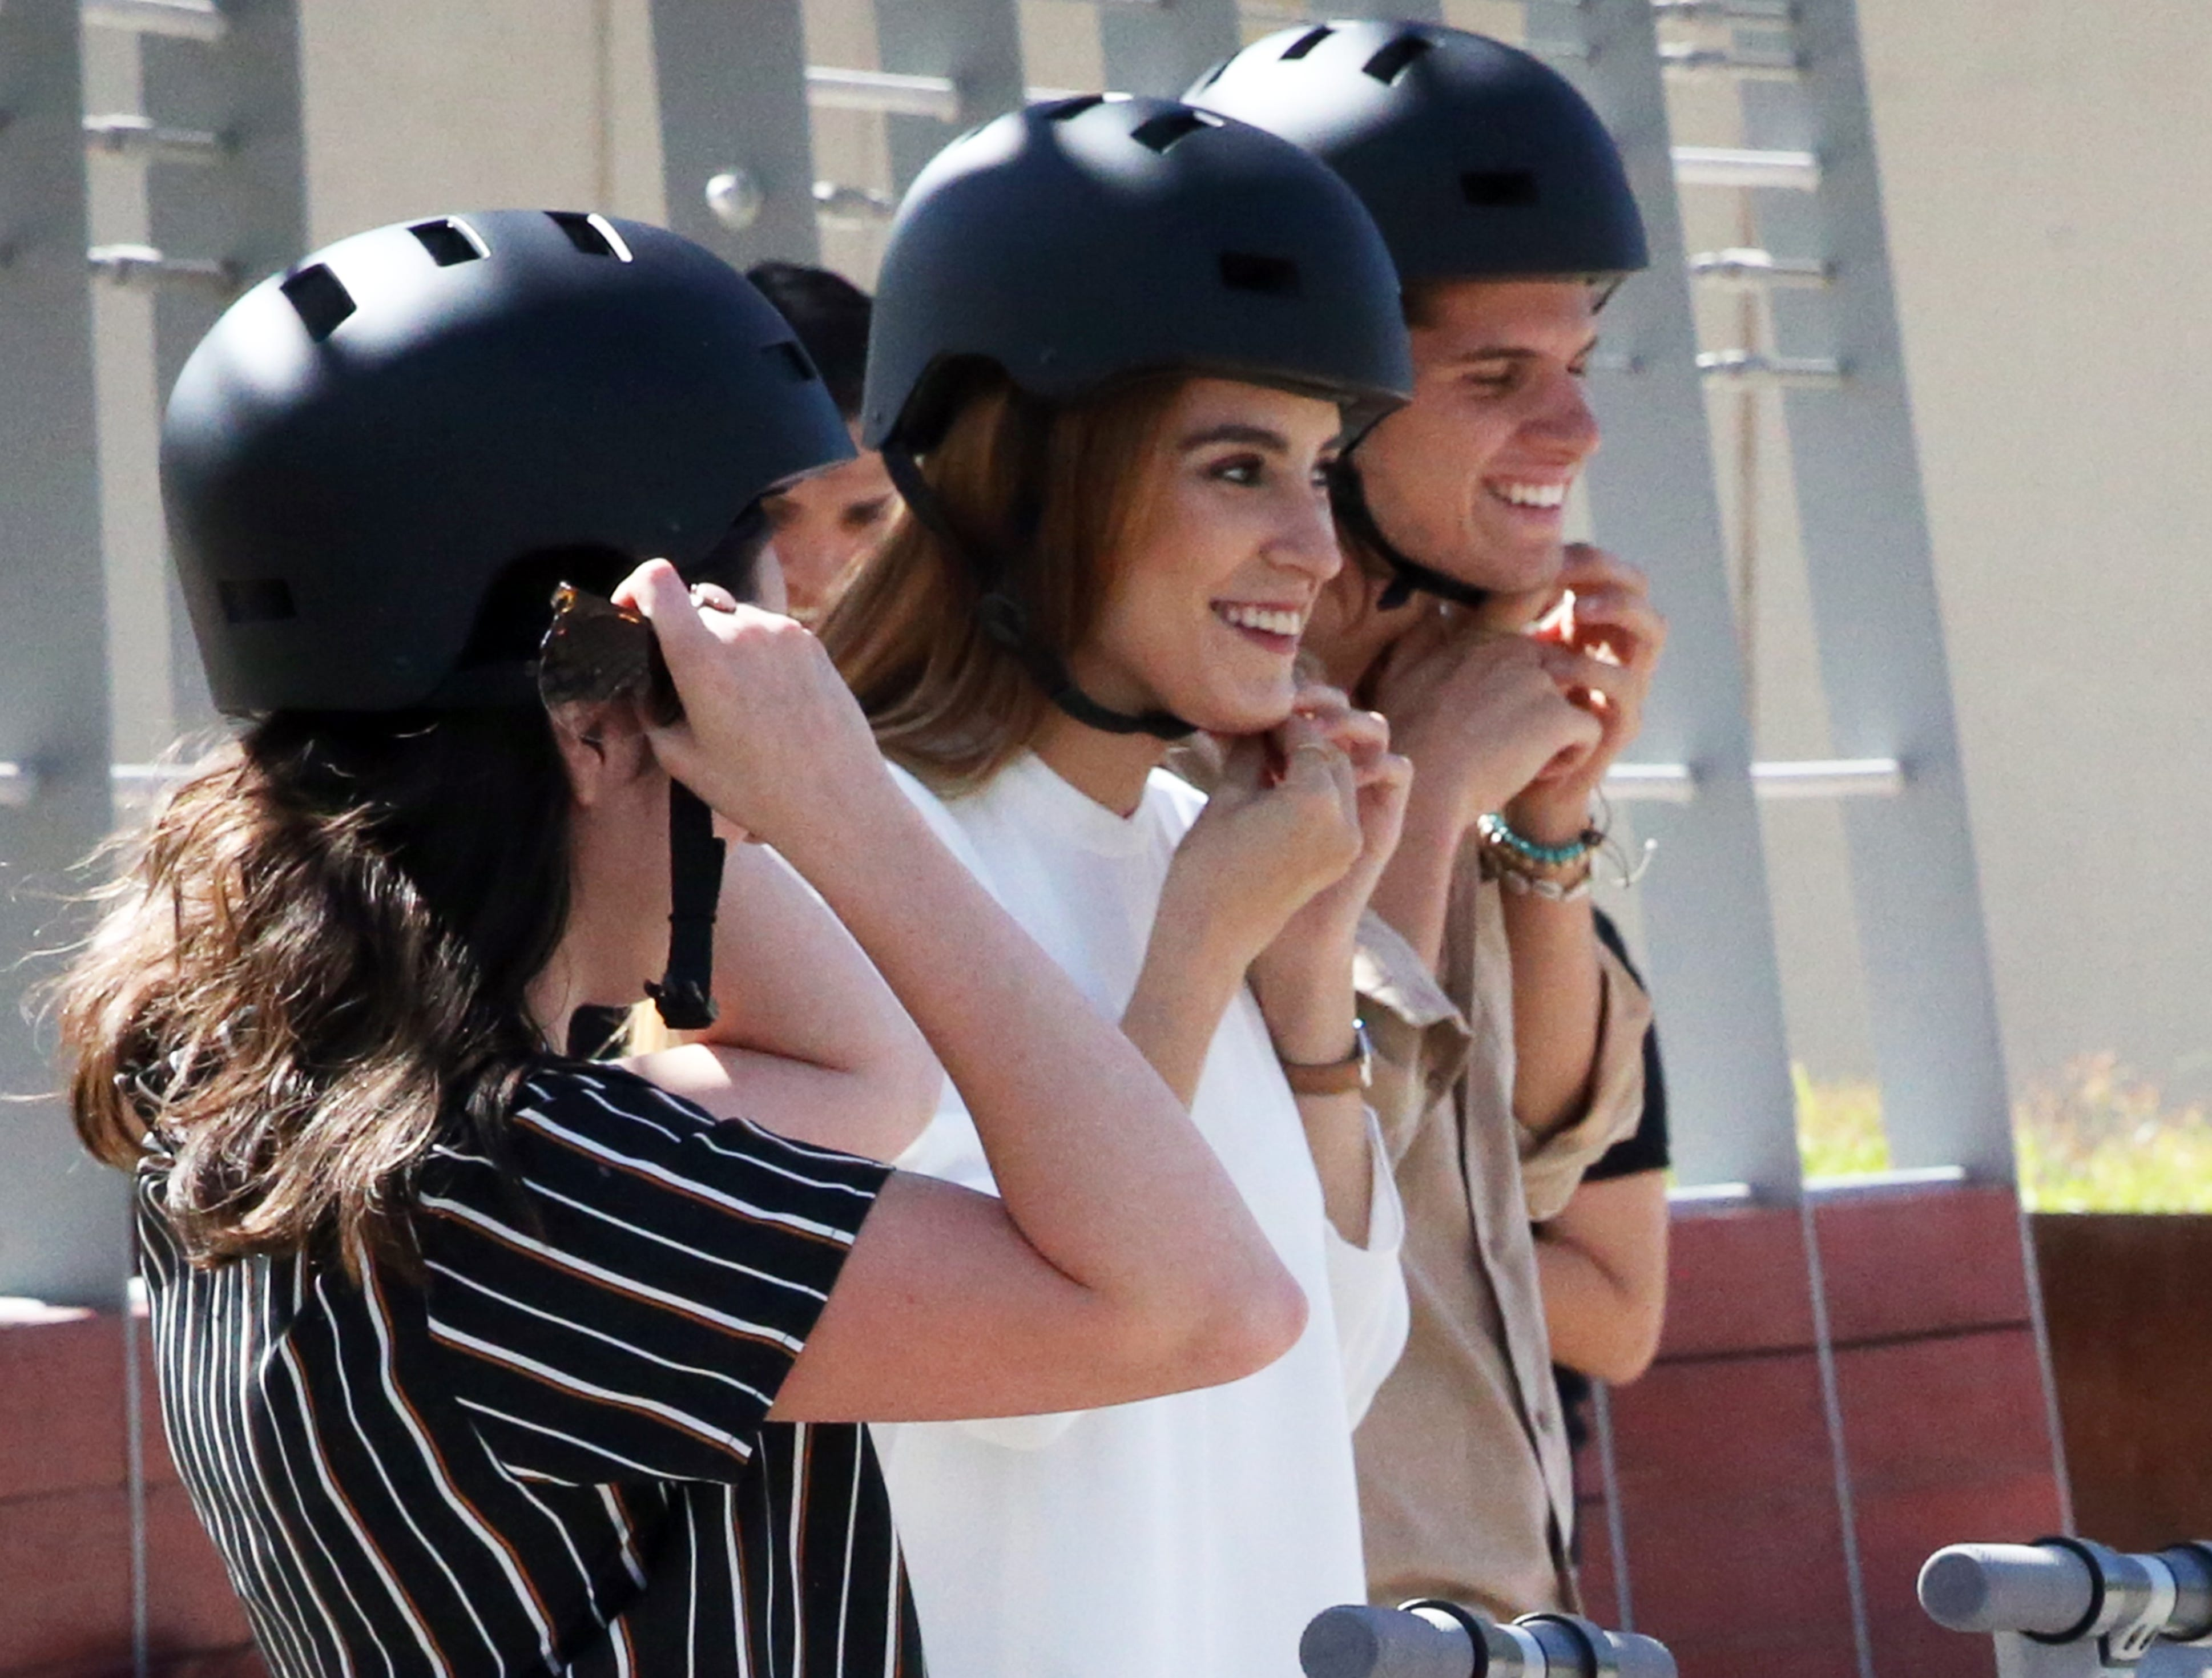 Monca Valdez, center, and others put on helmets during a demonstration on the new Glide scooters Tuesday in downtown El Paso.